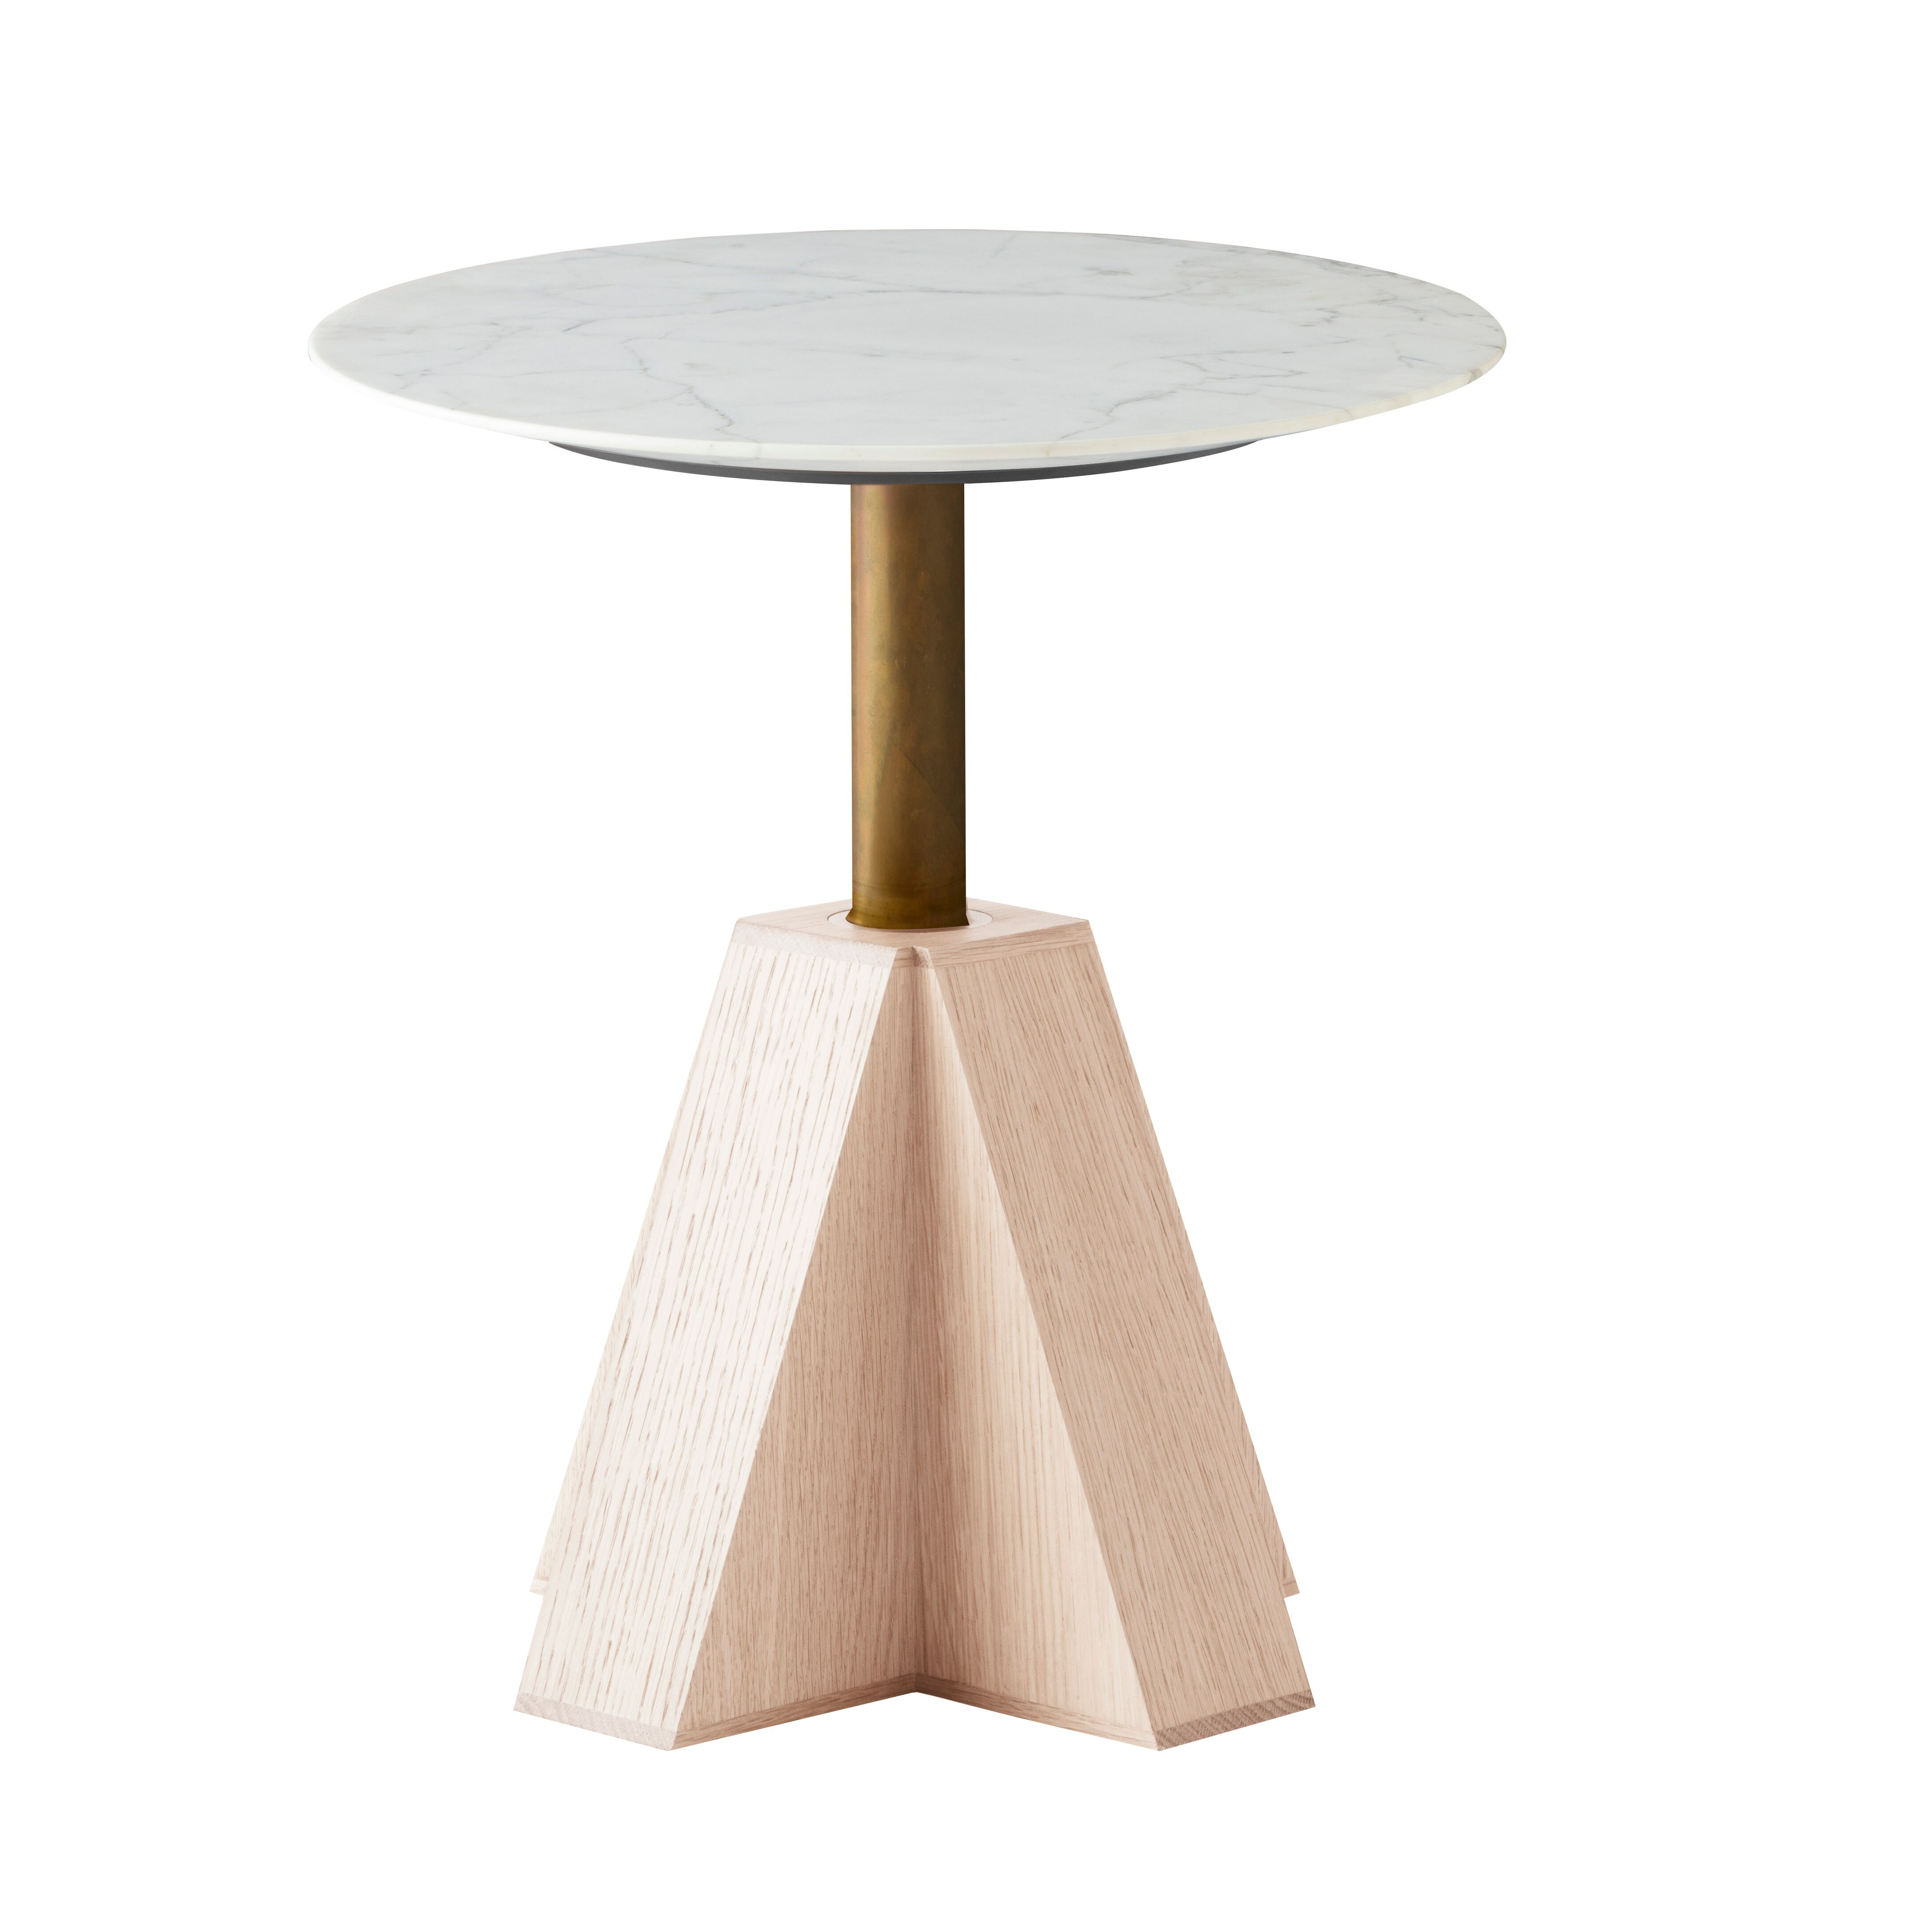 M Side Table By Sydney Designer & Architect Daniel Boddam